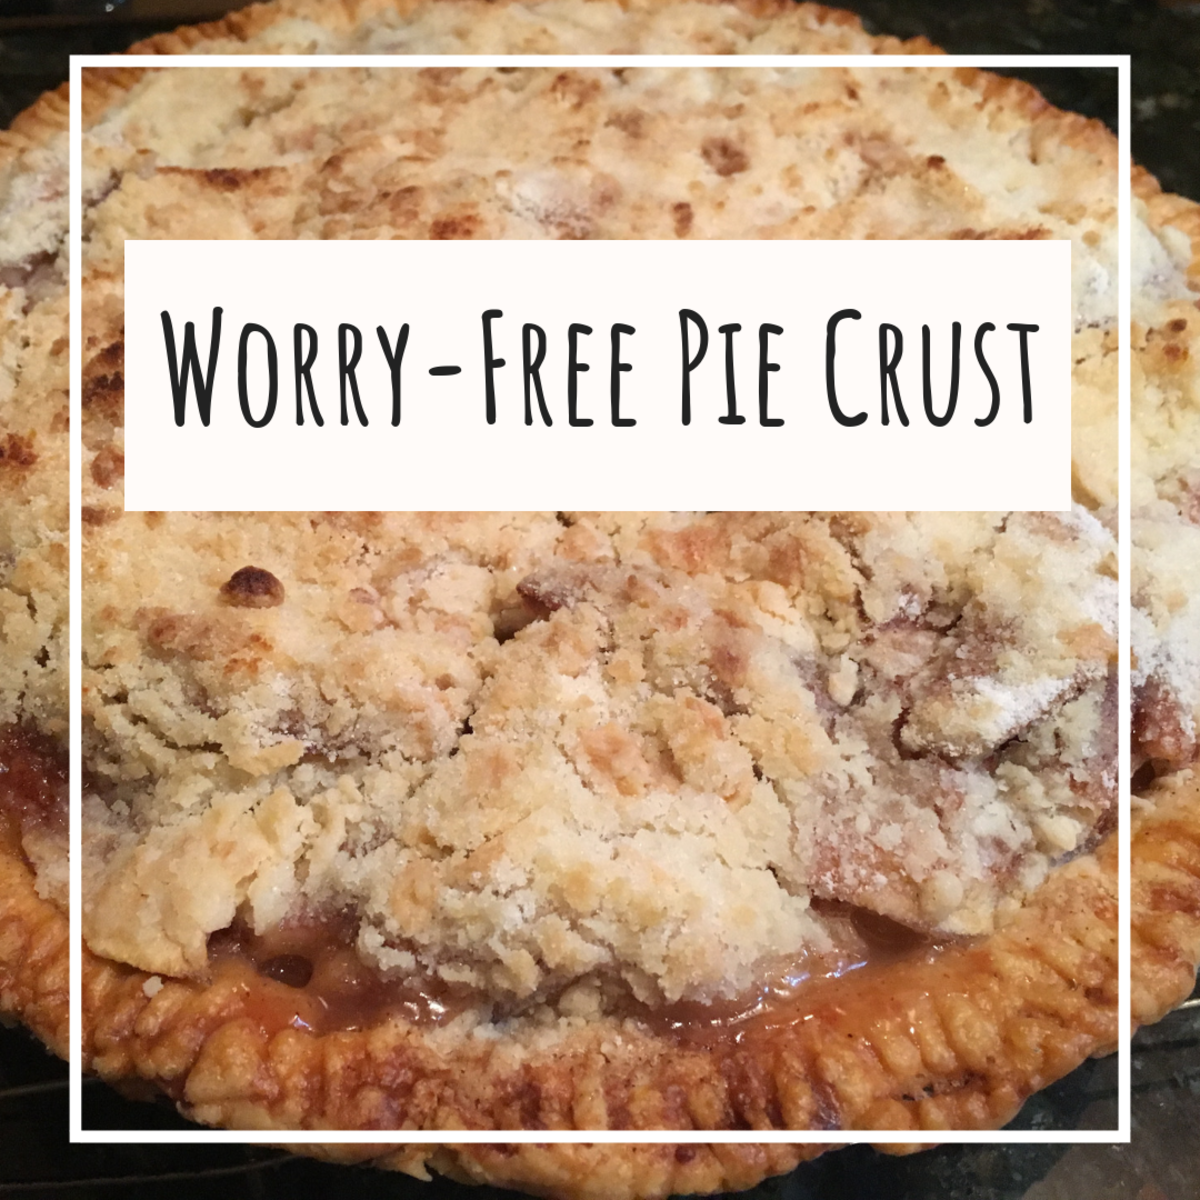 Pie crust won't stick together? Here's a fool-proof recipe.